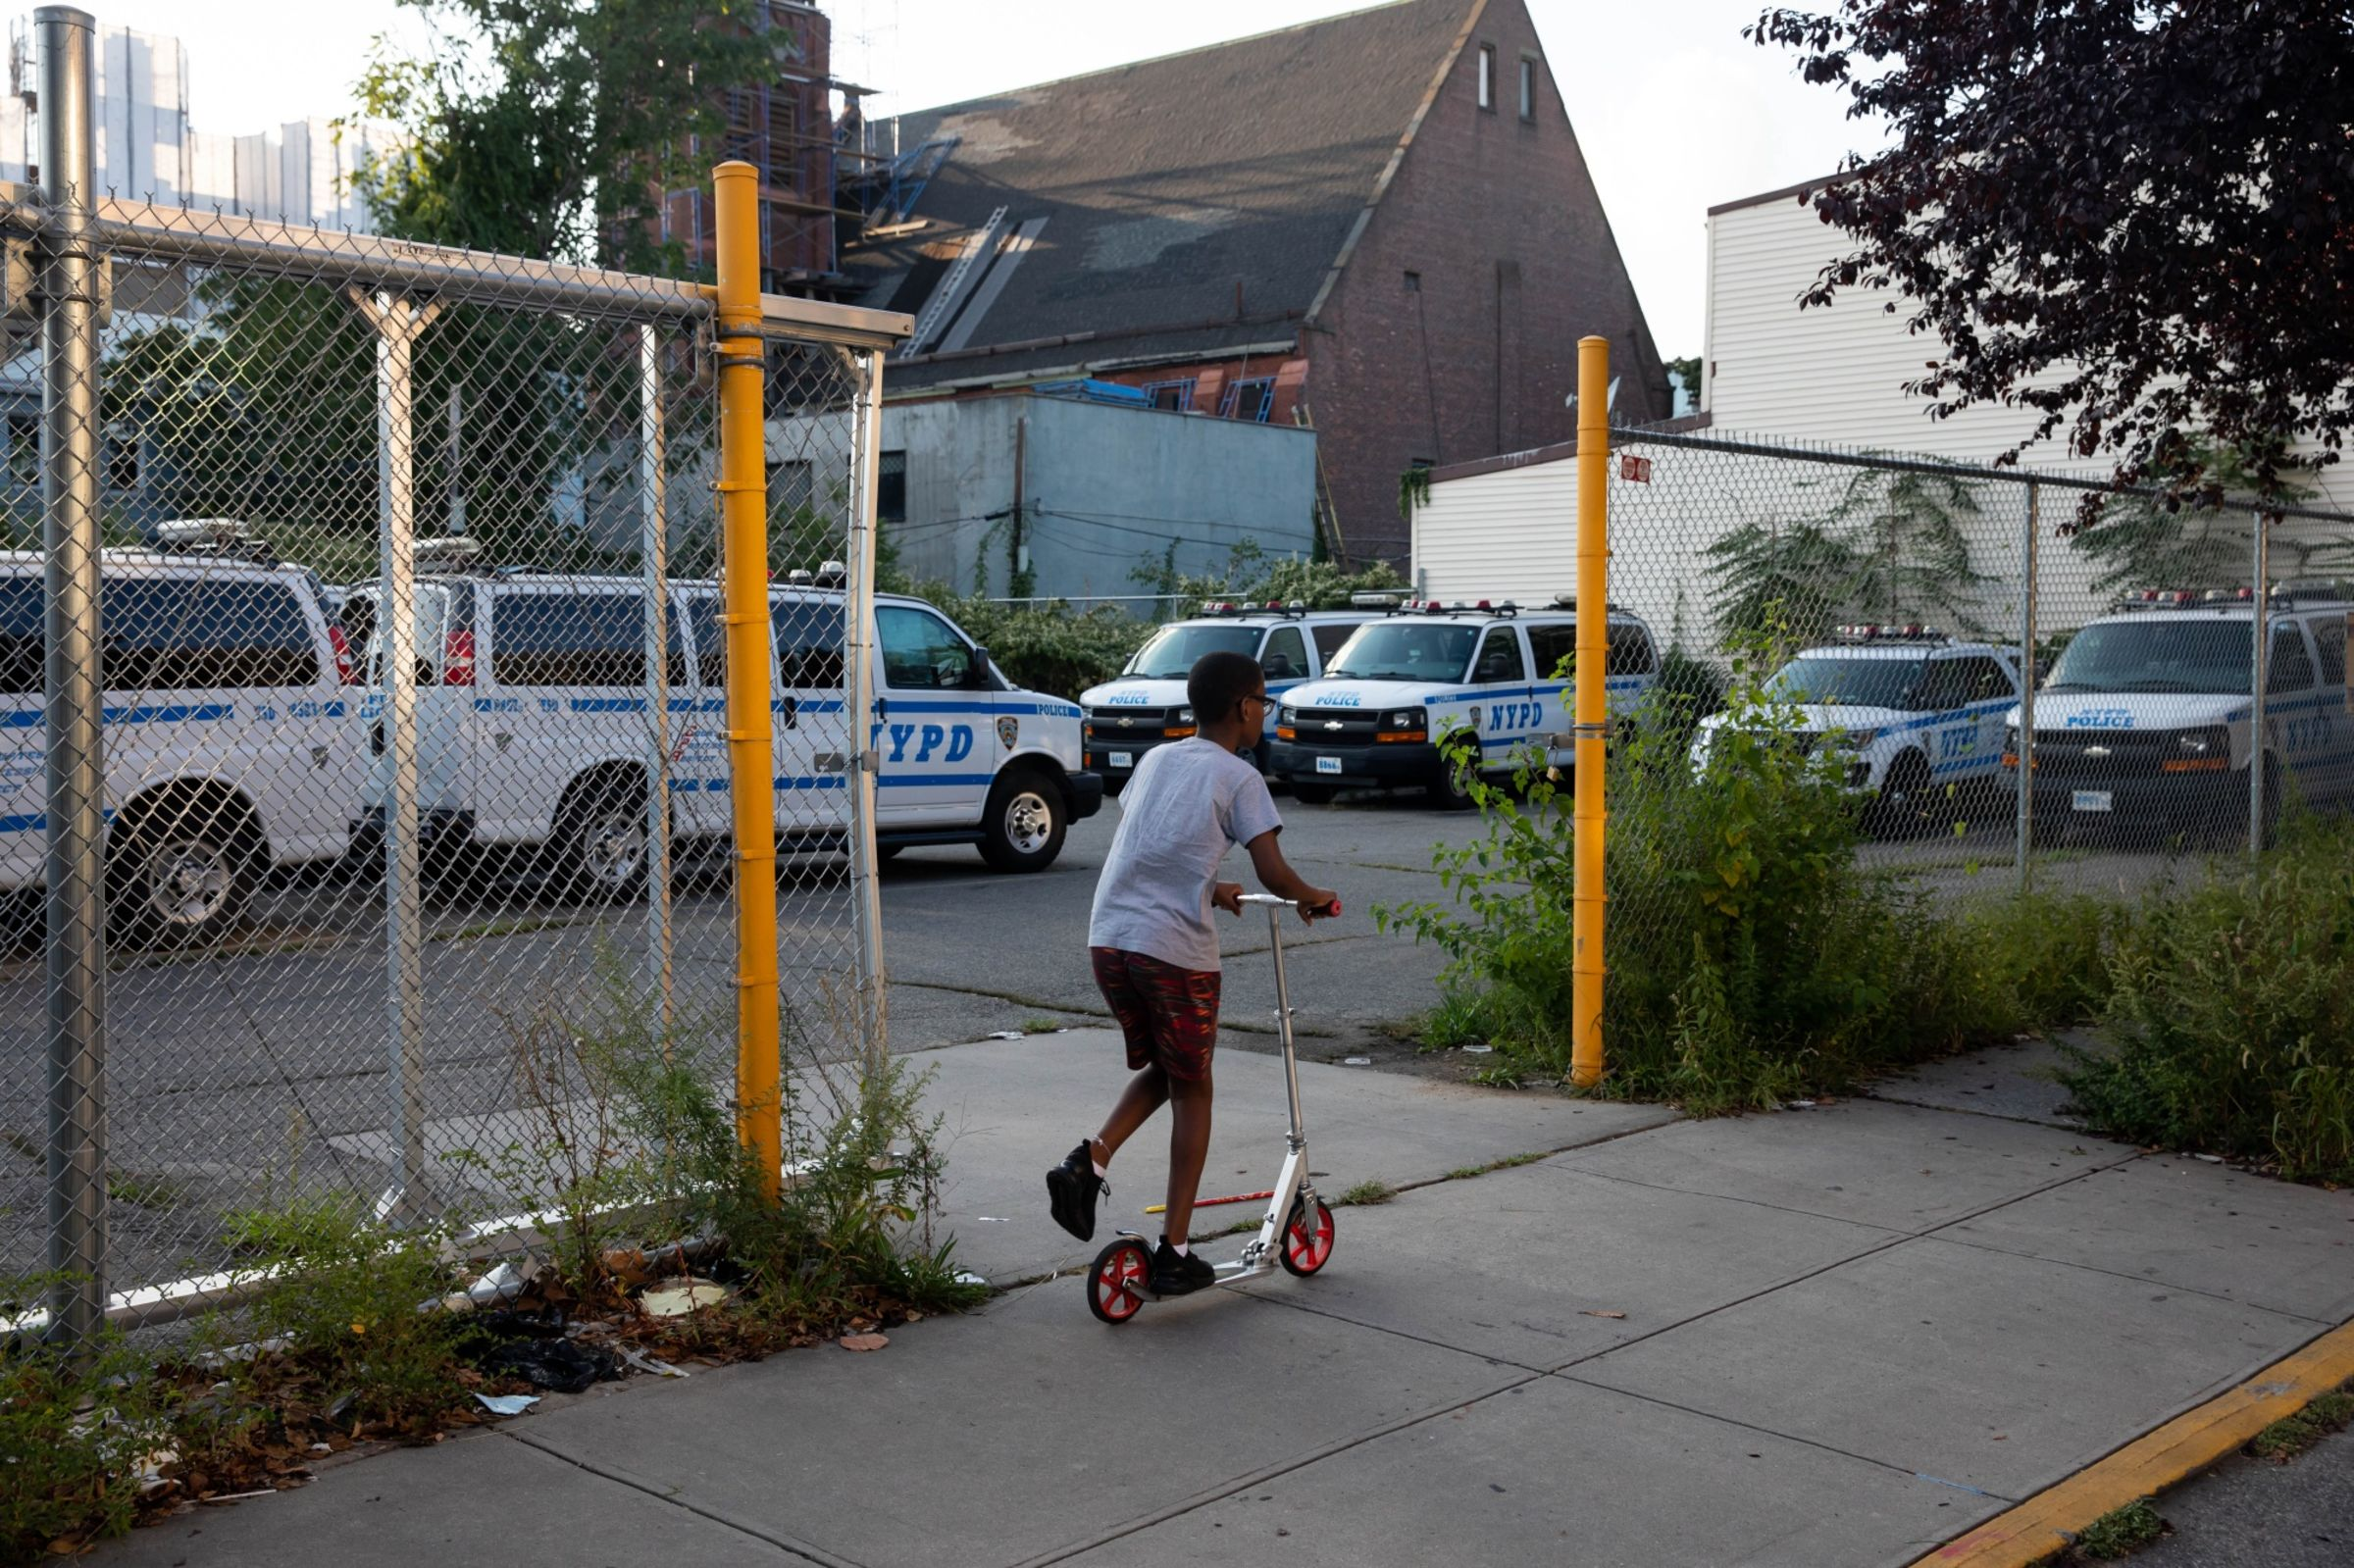 A child rides a scooter past an NYPD lot in the 75th precinct.